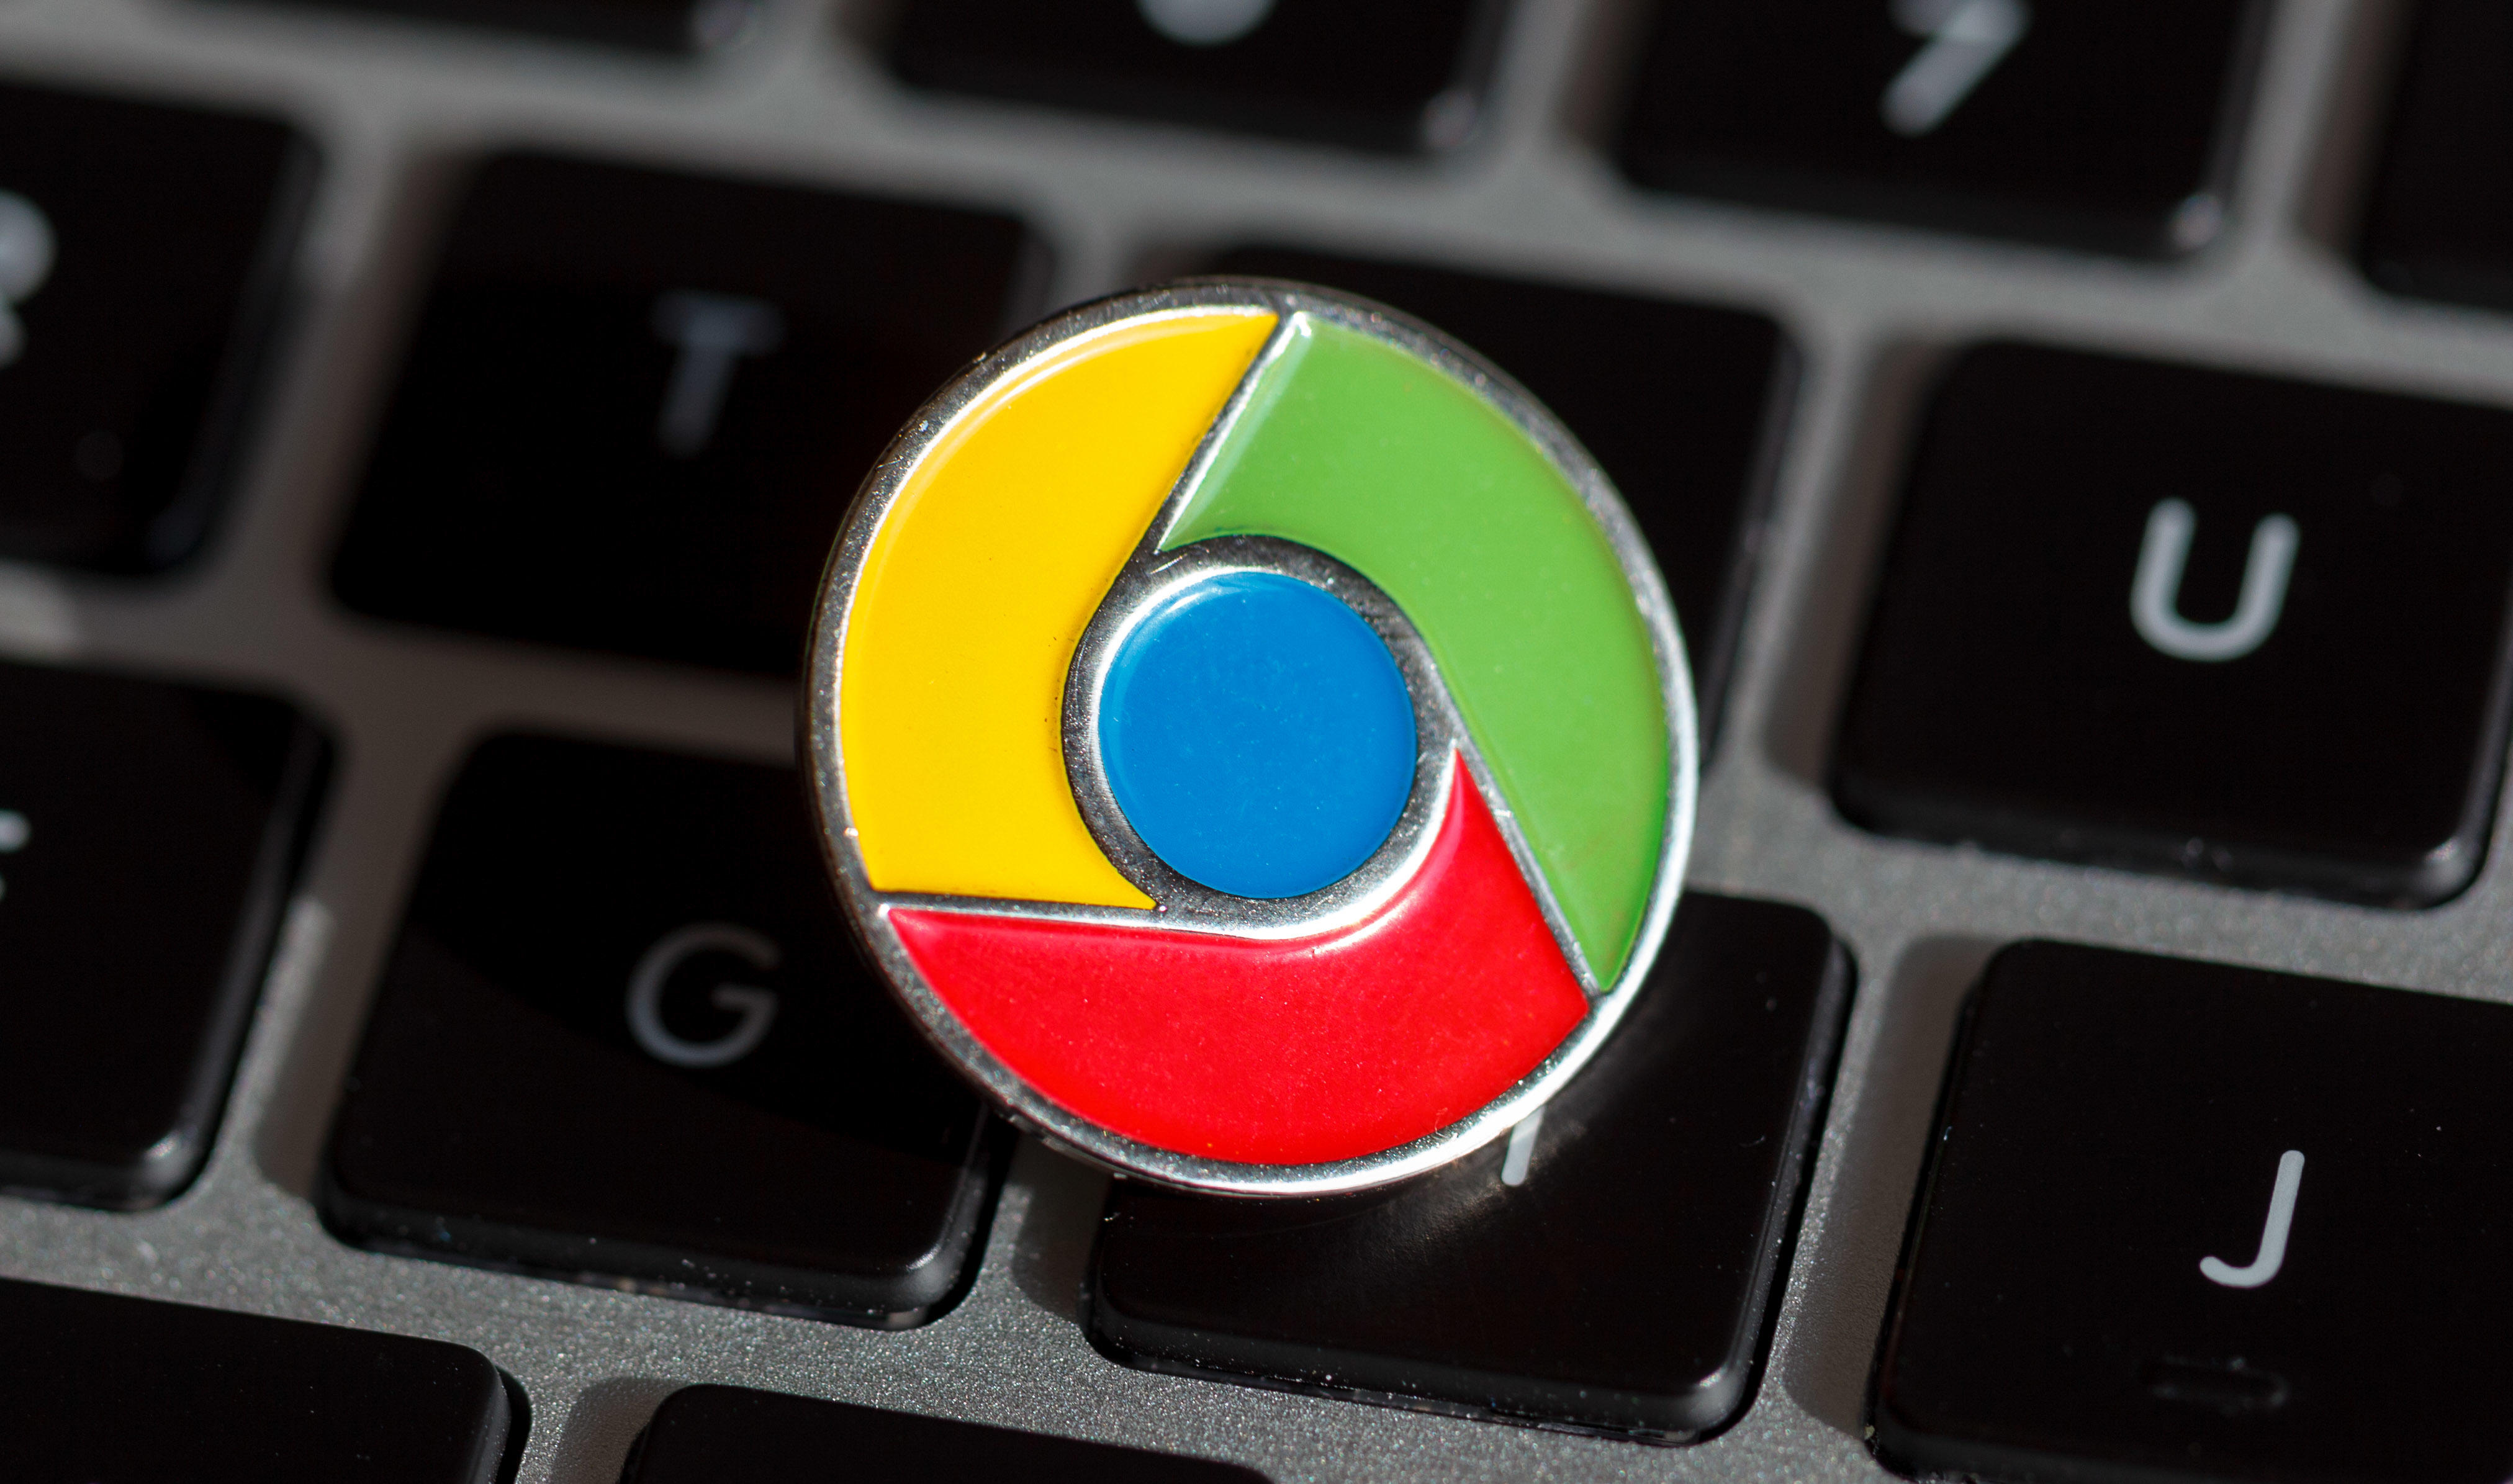 A Google Chrome lapel pin